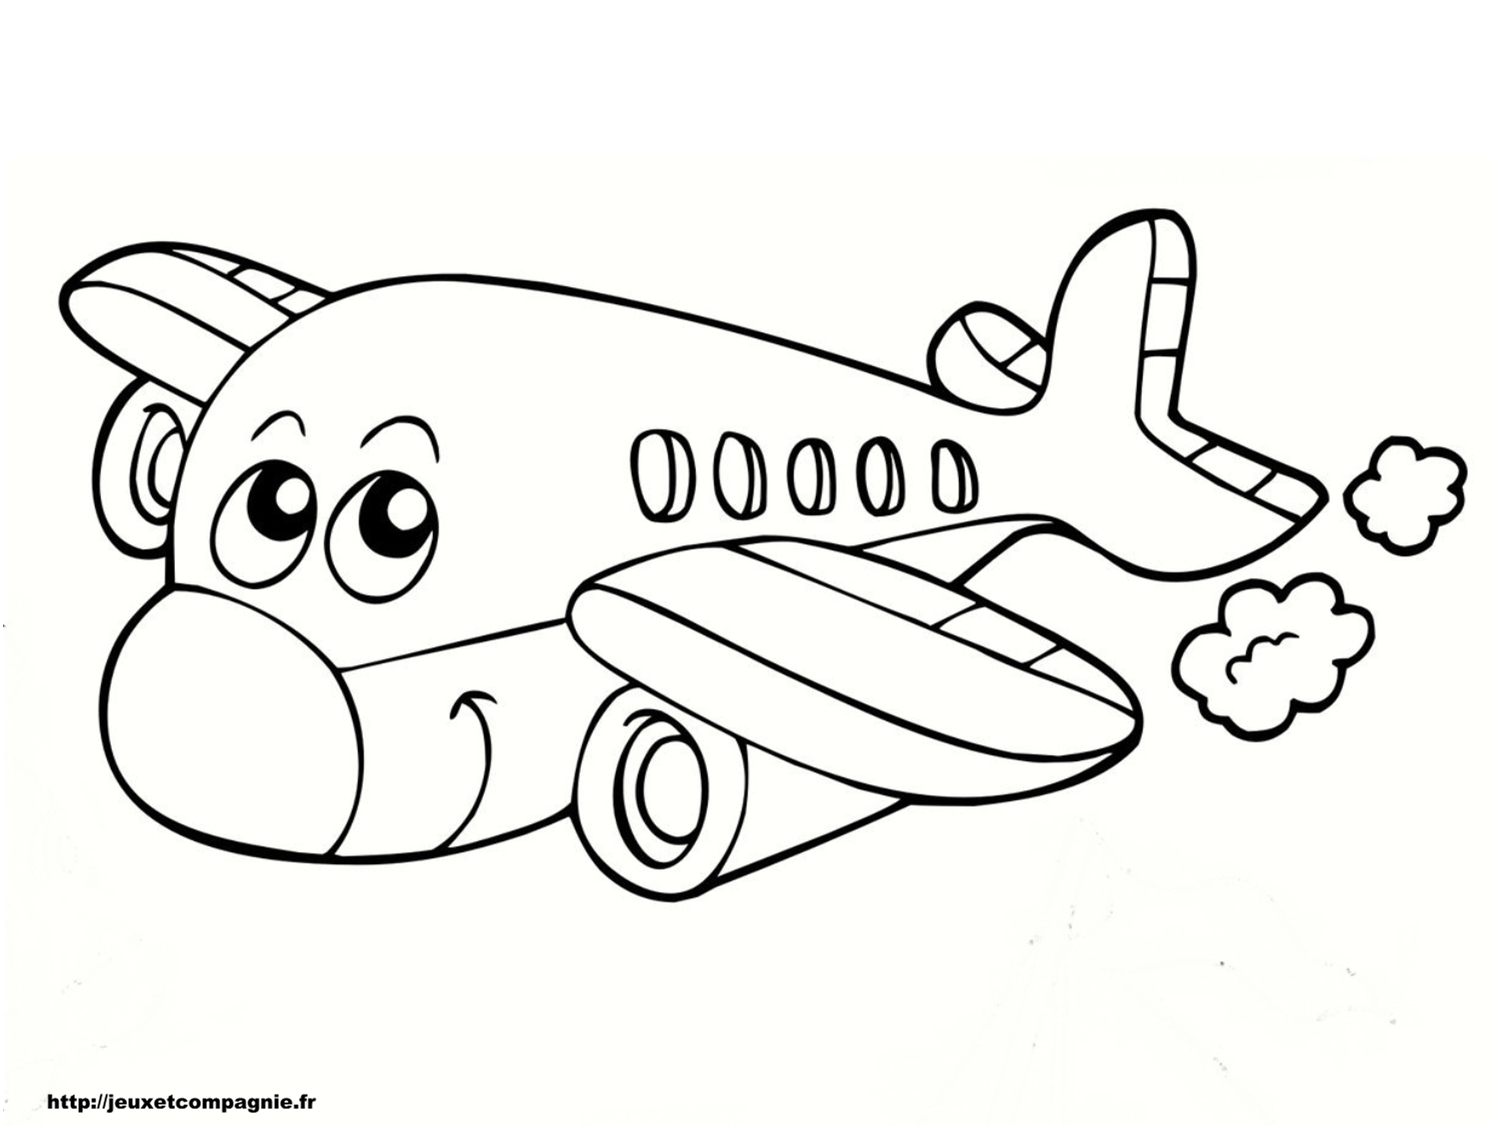 Coloriages de v hicules - Coloriage avion ...